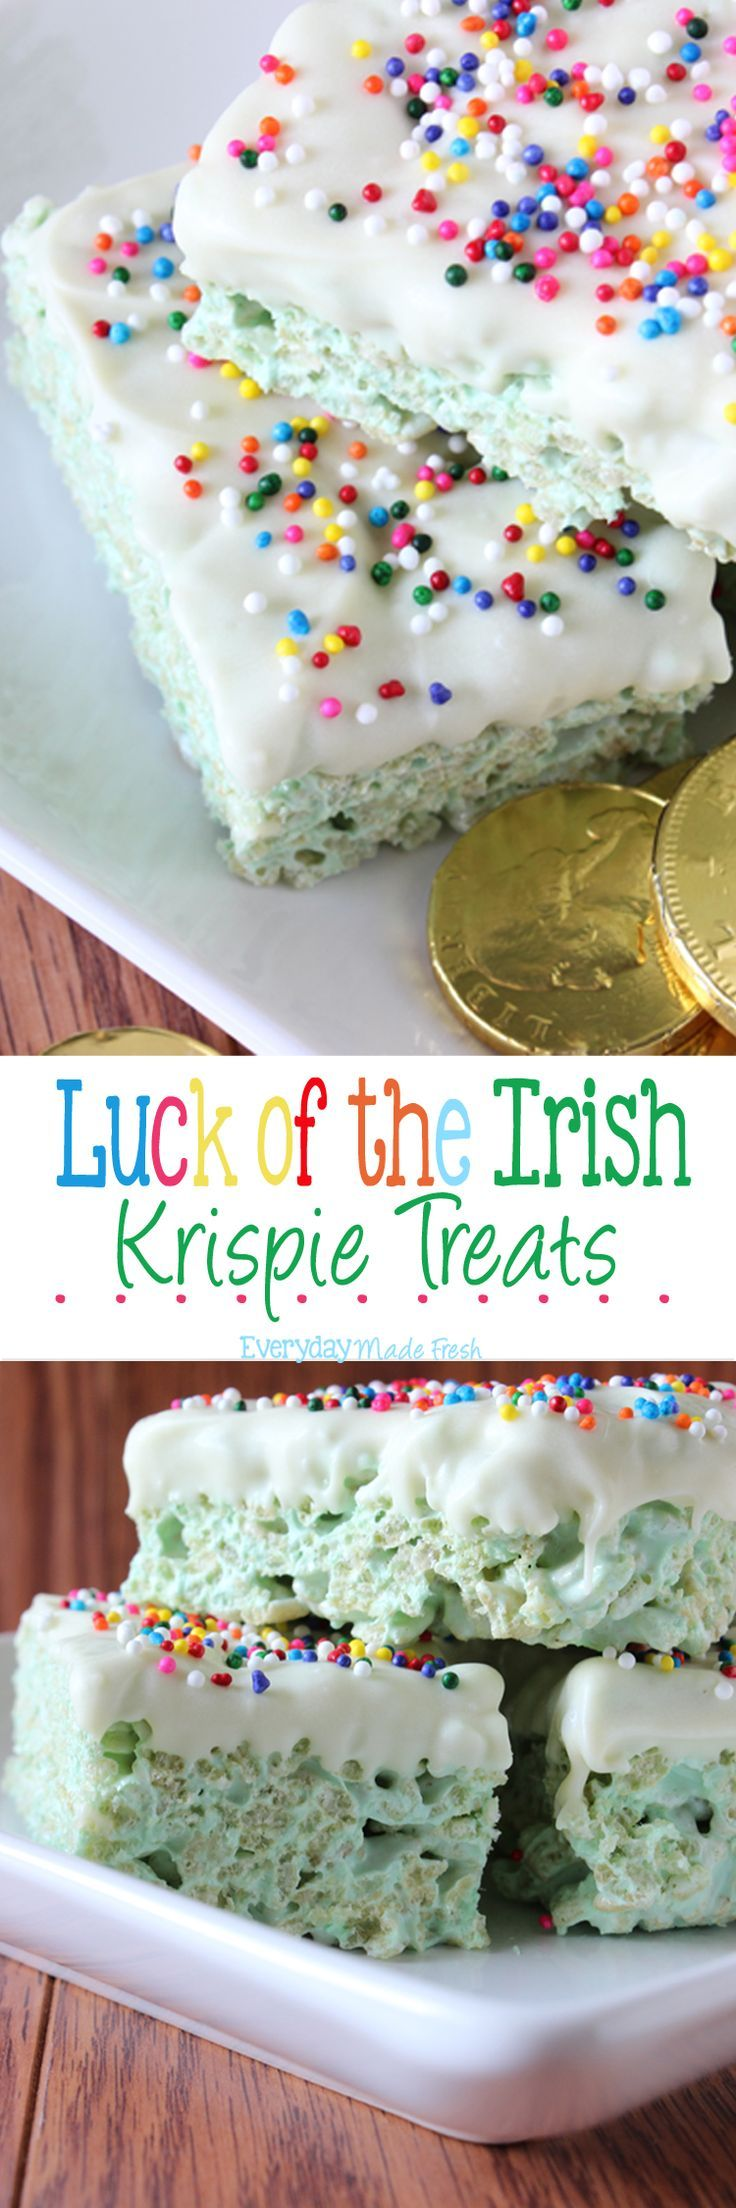 These Luck of the Irish Rice Krispie Treats are festive green and dipped in white chocolate with rainbow sprinkles! | OHMY-CREATIVE.COM via EverydayMadeFresh.com #stpatricksday #ricekrispietreats #sprinkles #stpatricksdaytreats